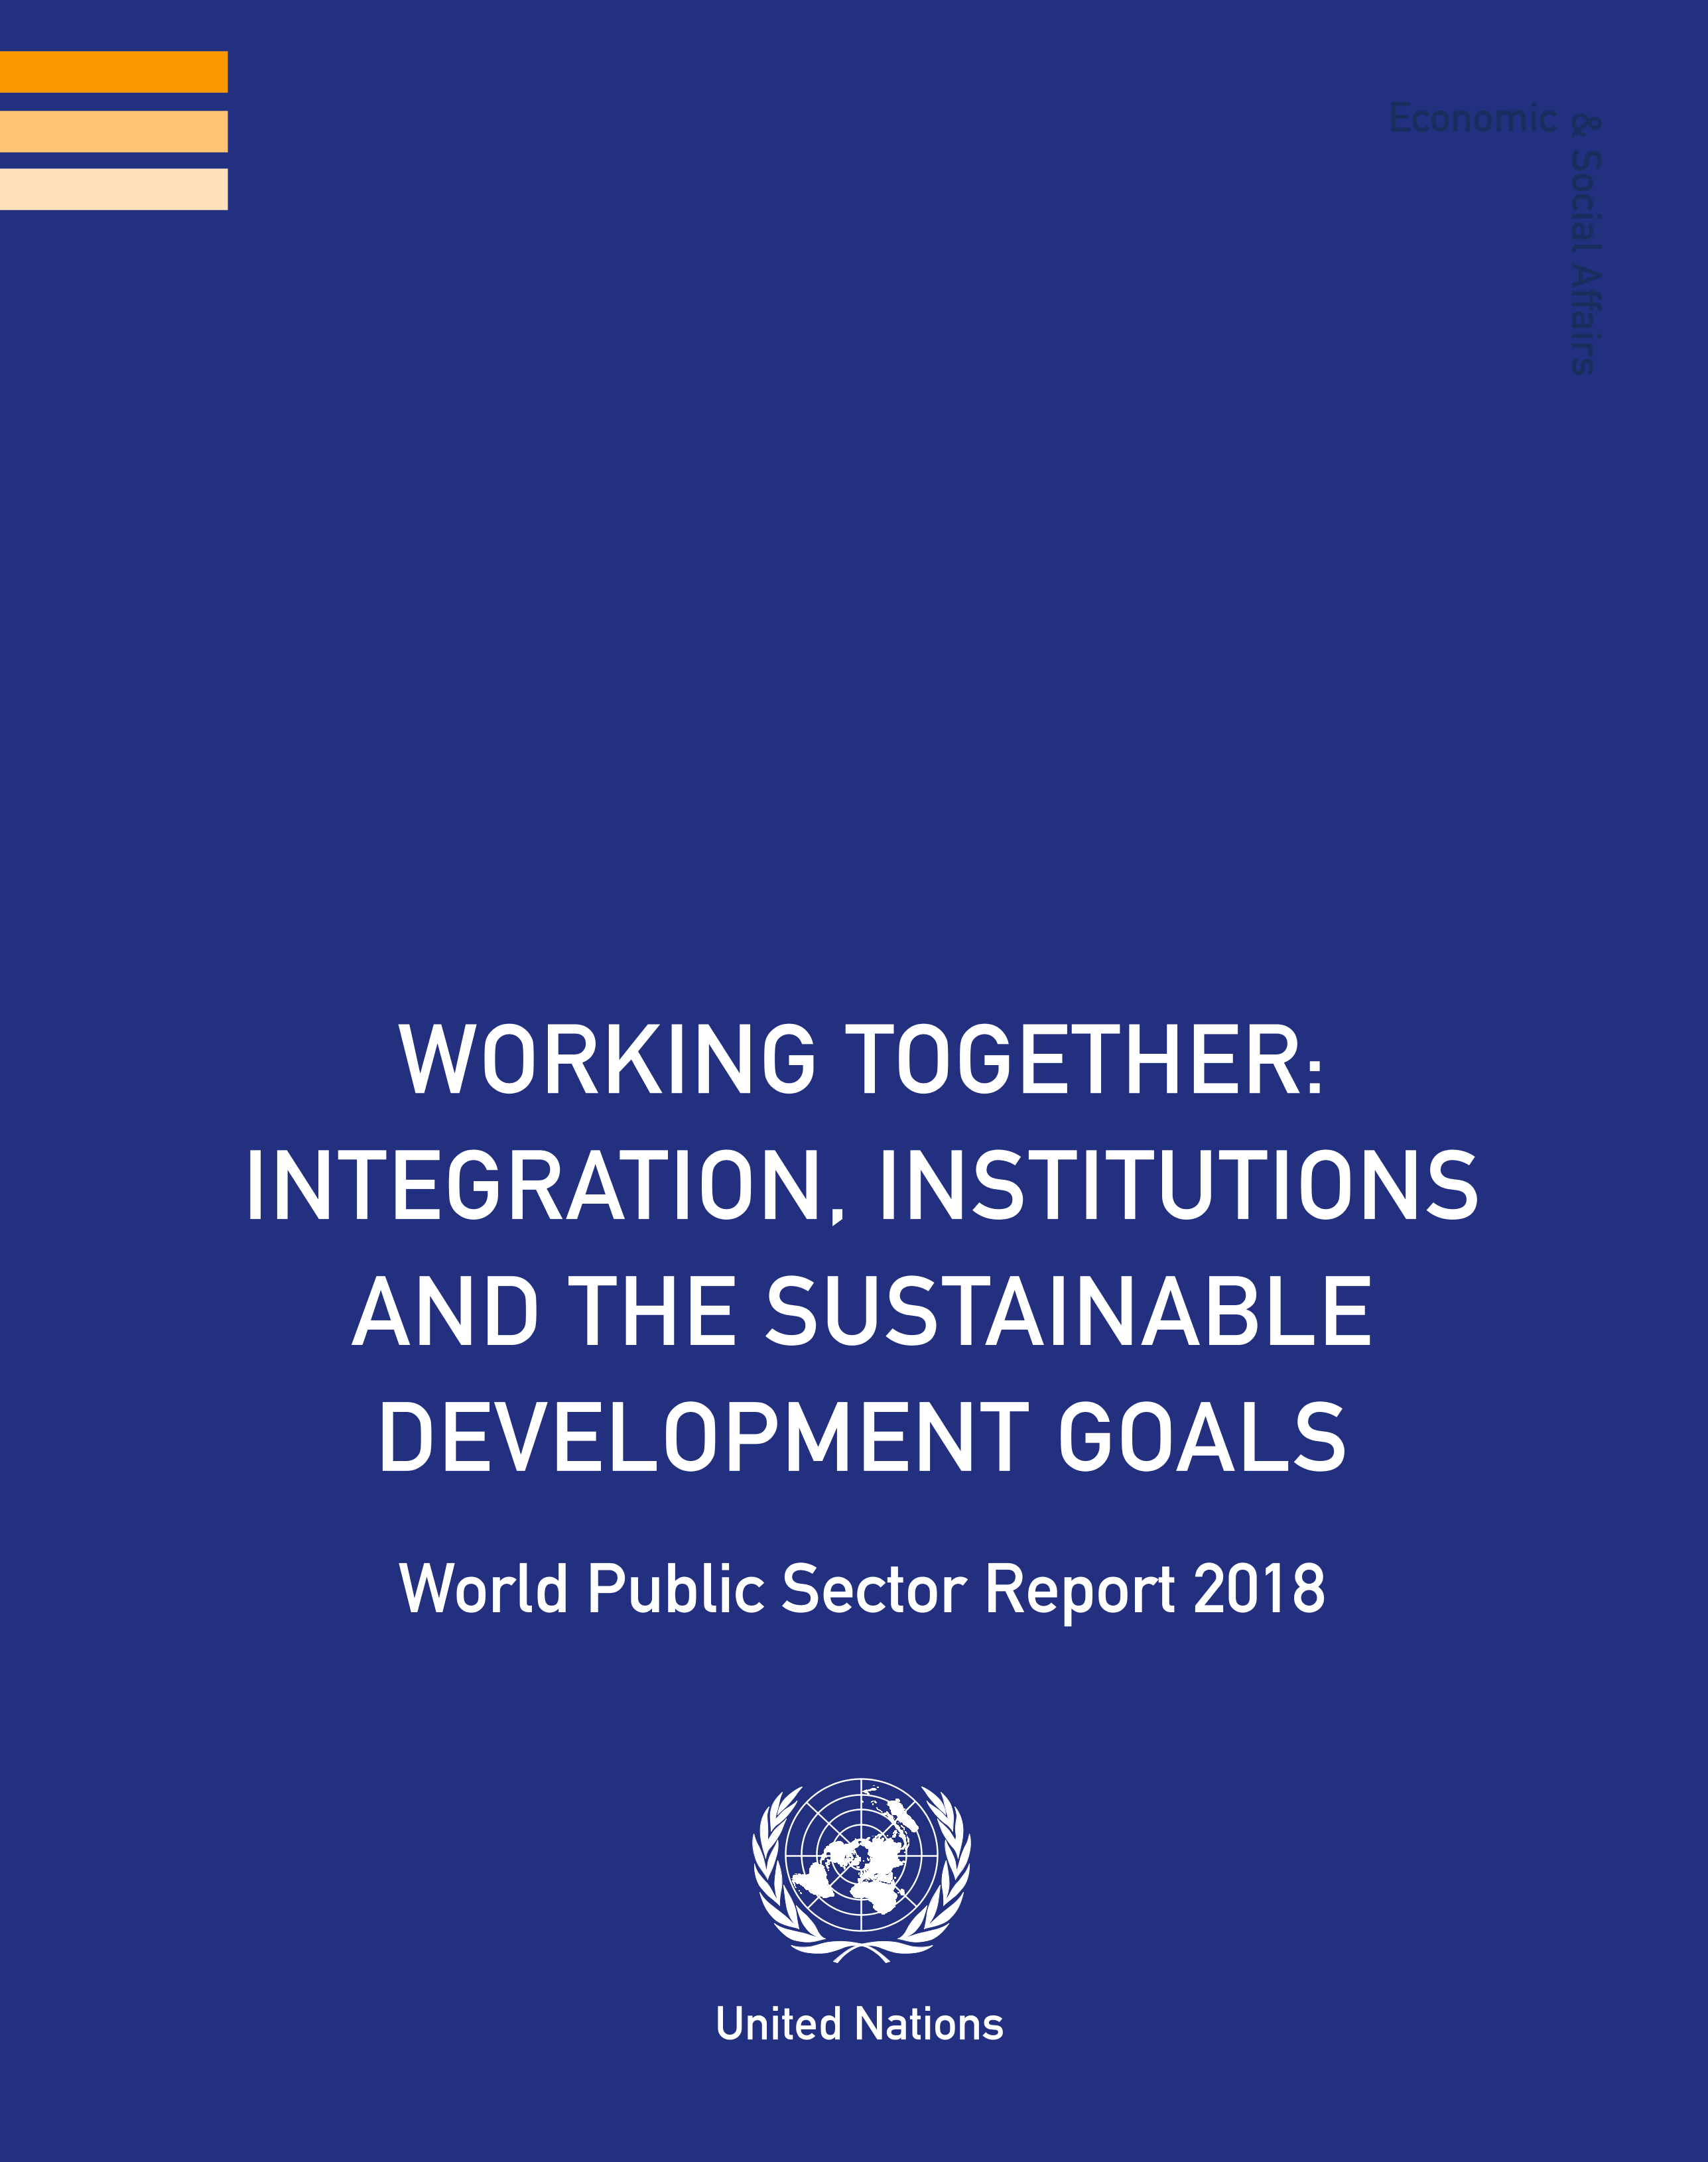 working together_integration_institutions_and_the_sdg.png